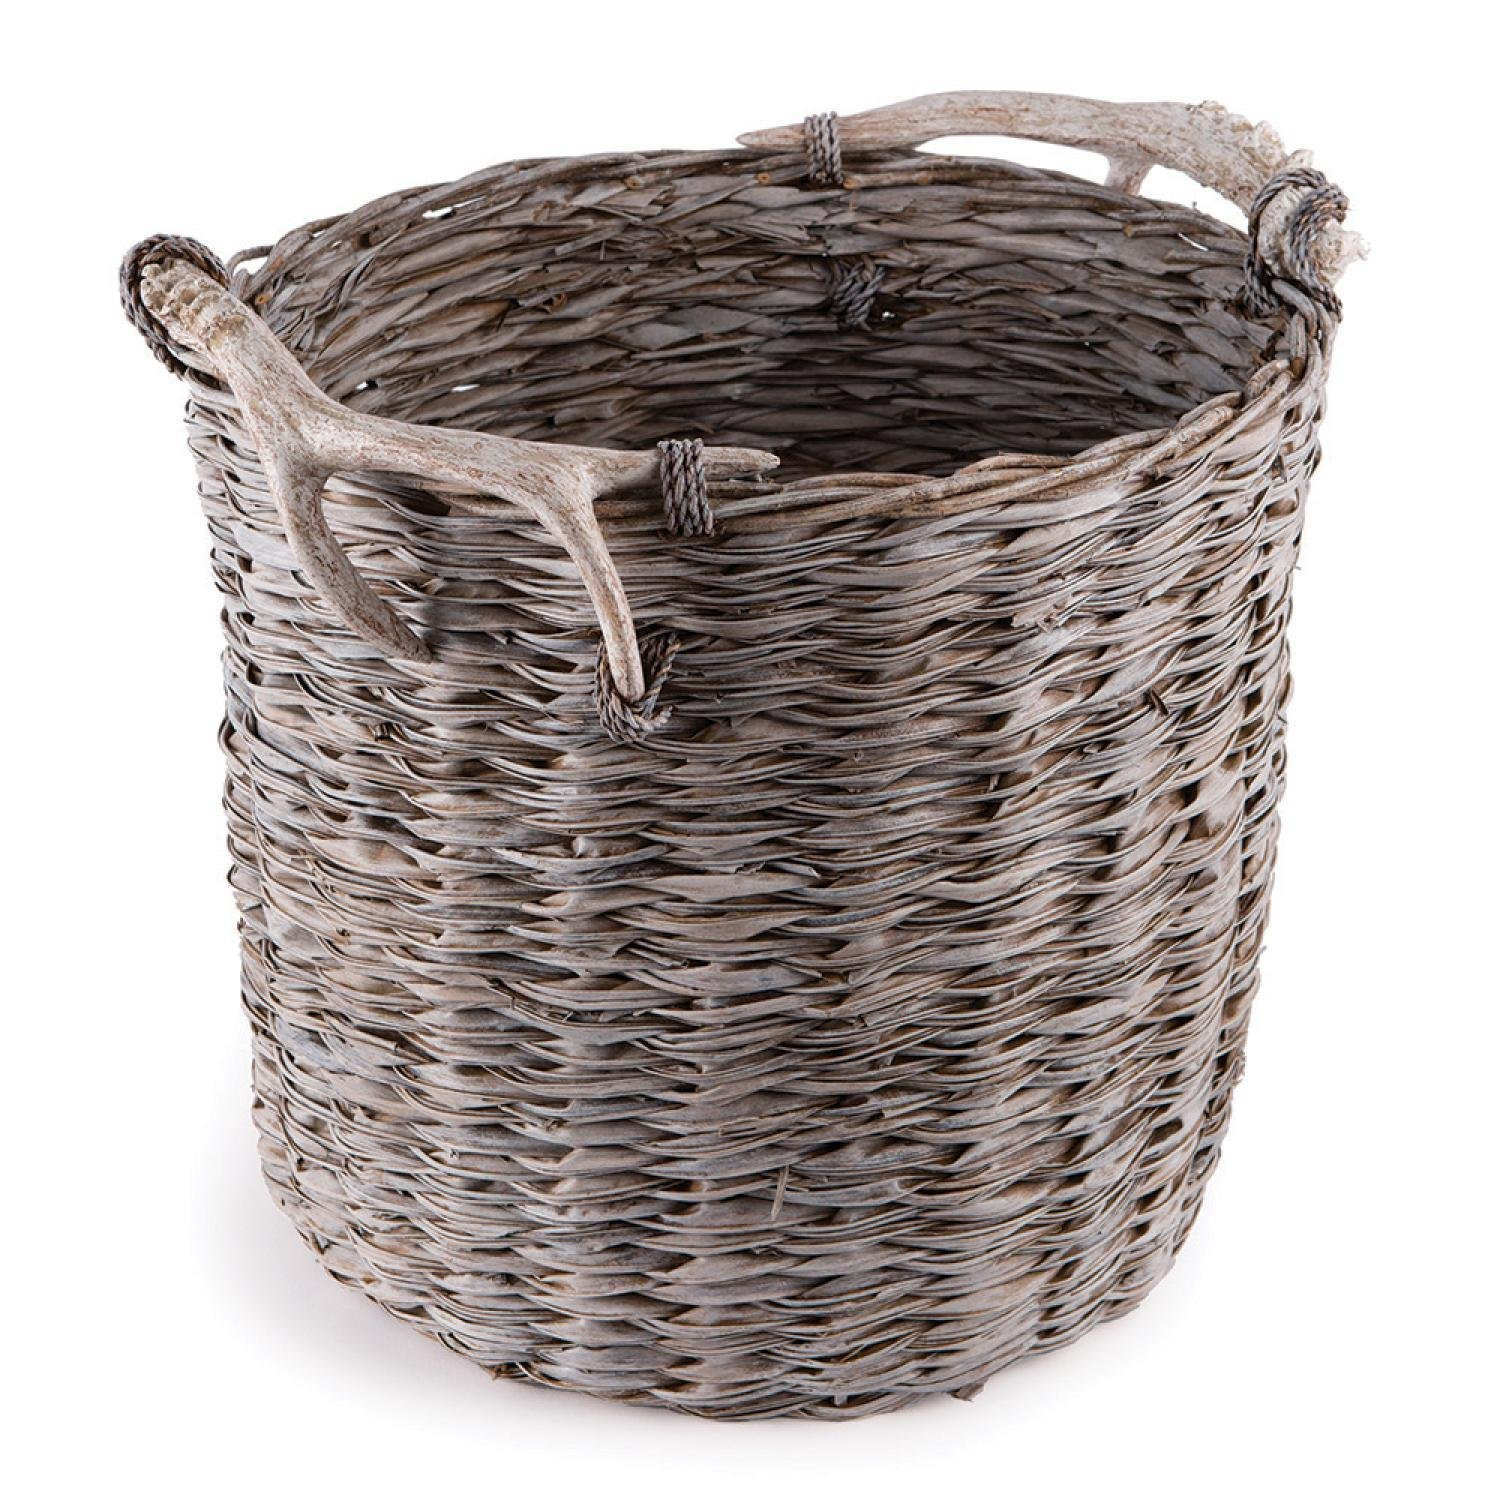 CC Home Furnishings Weathered Gray and Beige Faux Antler and Rope Wrapped Handle Handwoven Decorative Basket